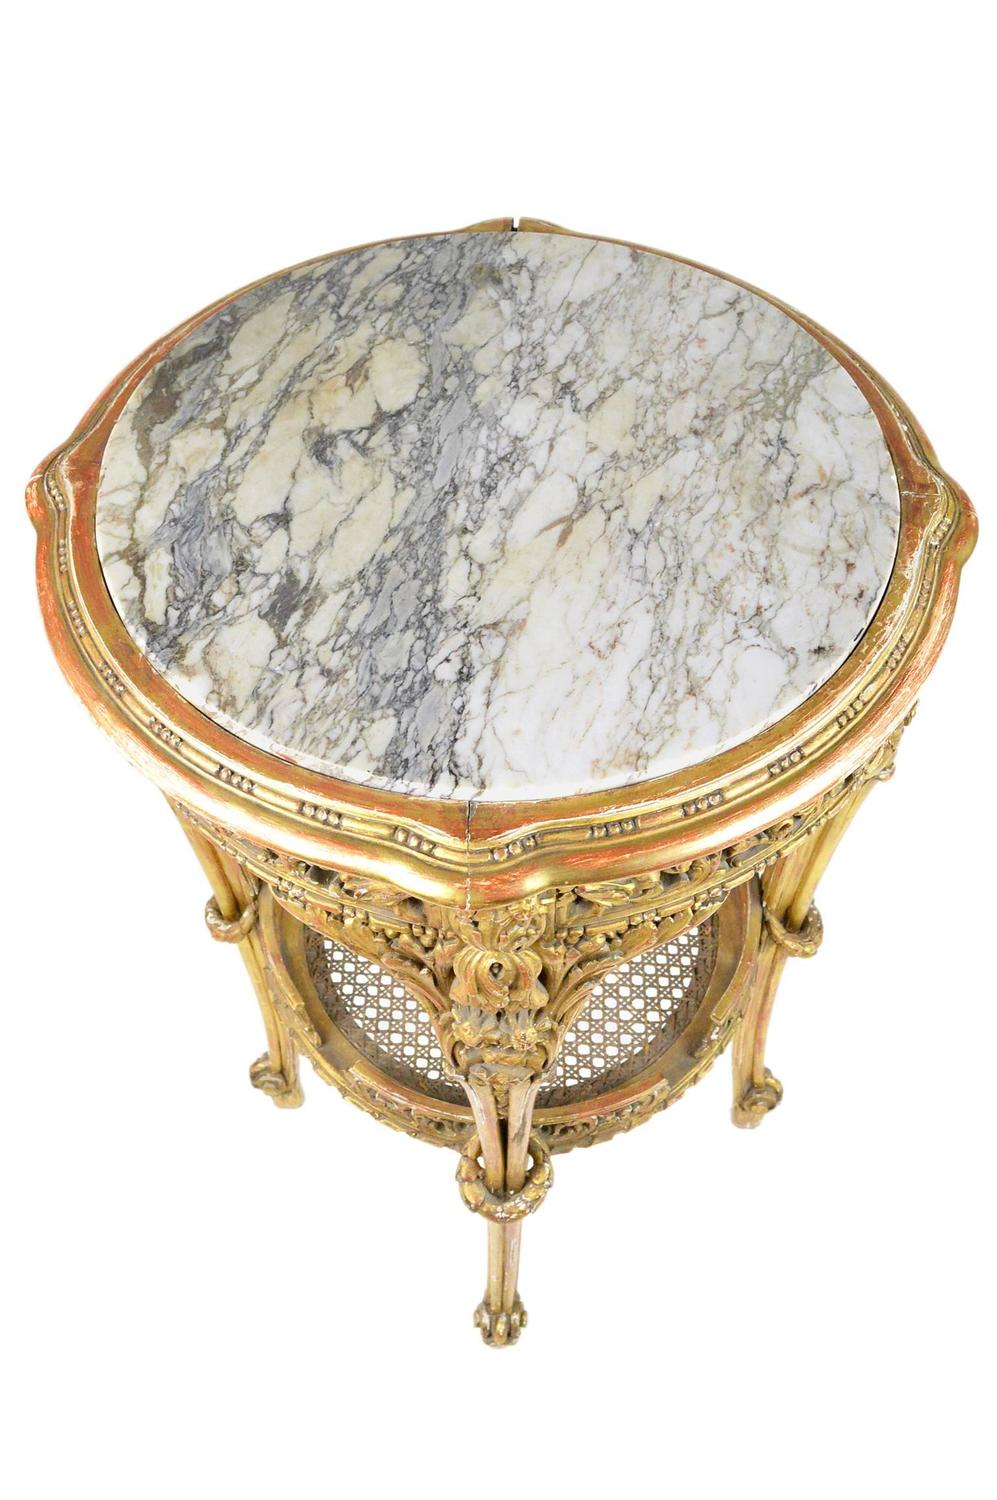 French baroque style giltwood marble top table for sale at for French baroque style